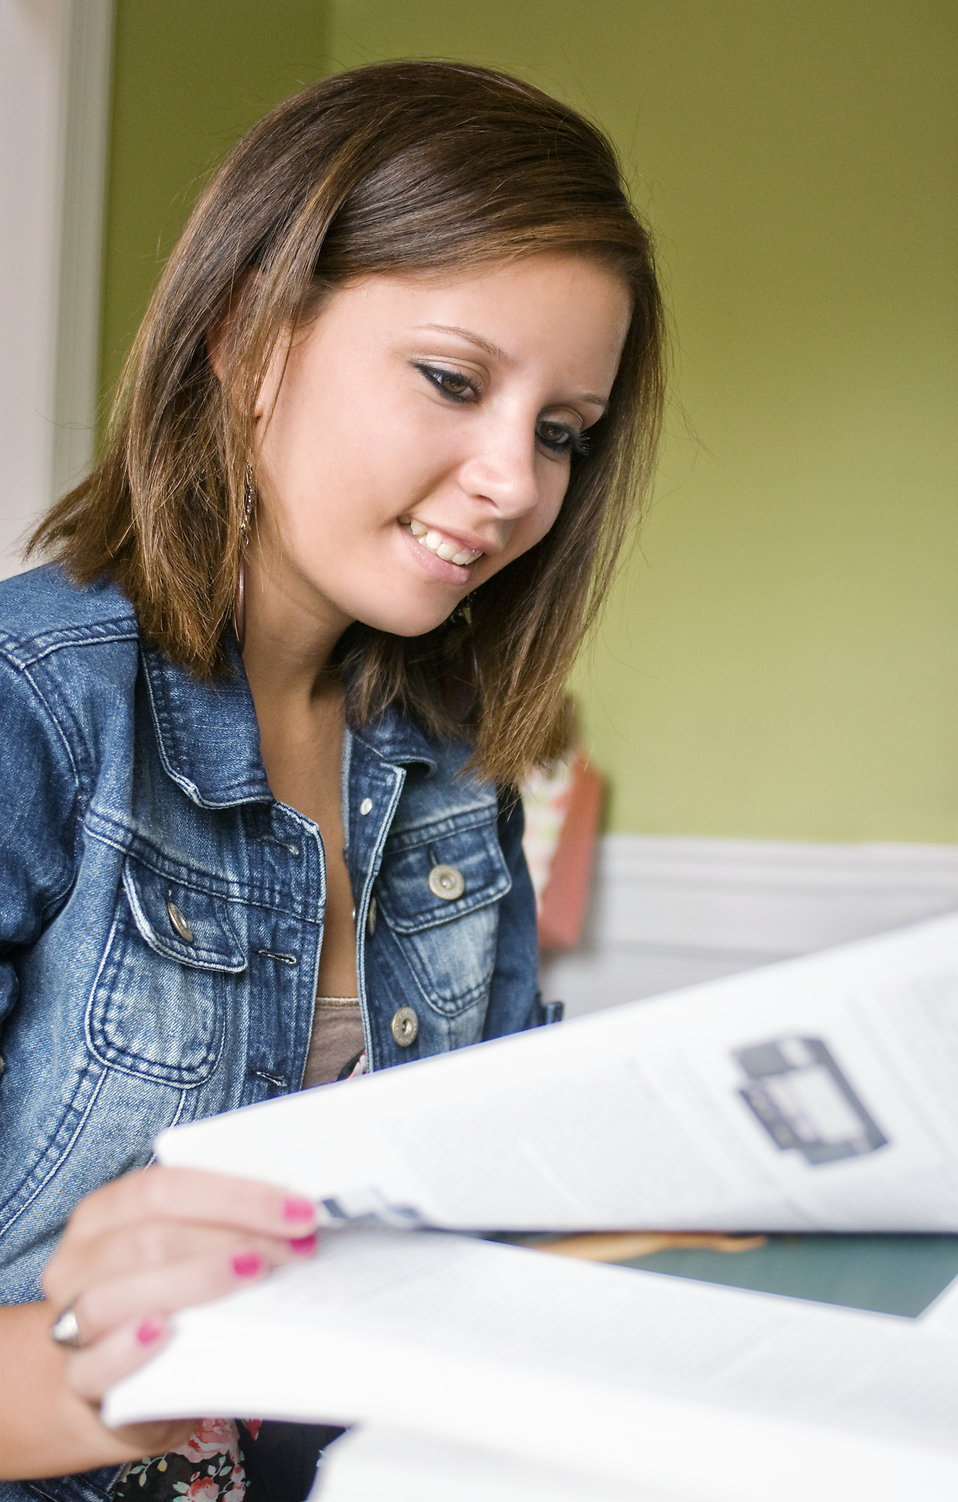 A female student reading a book : Free Stock Photo